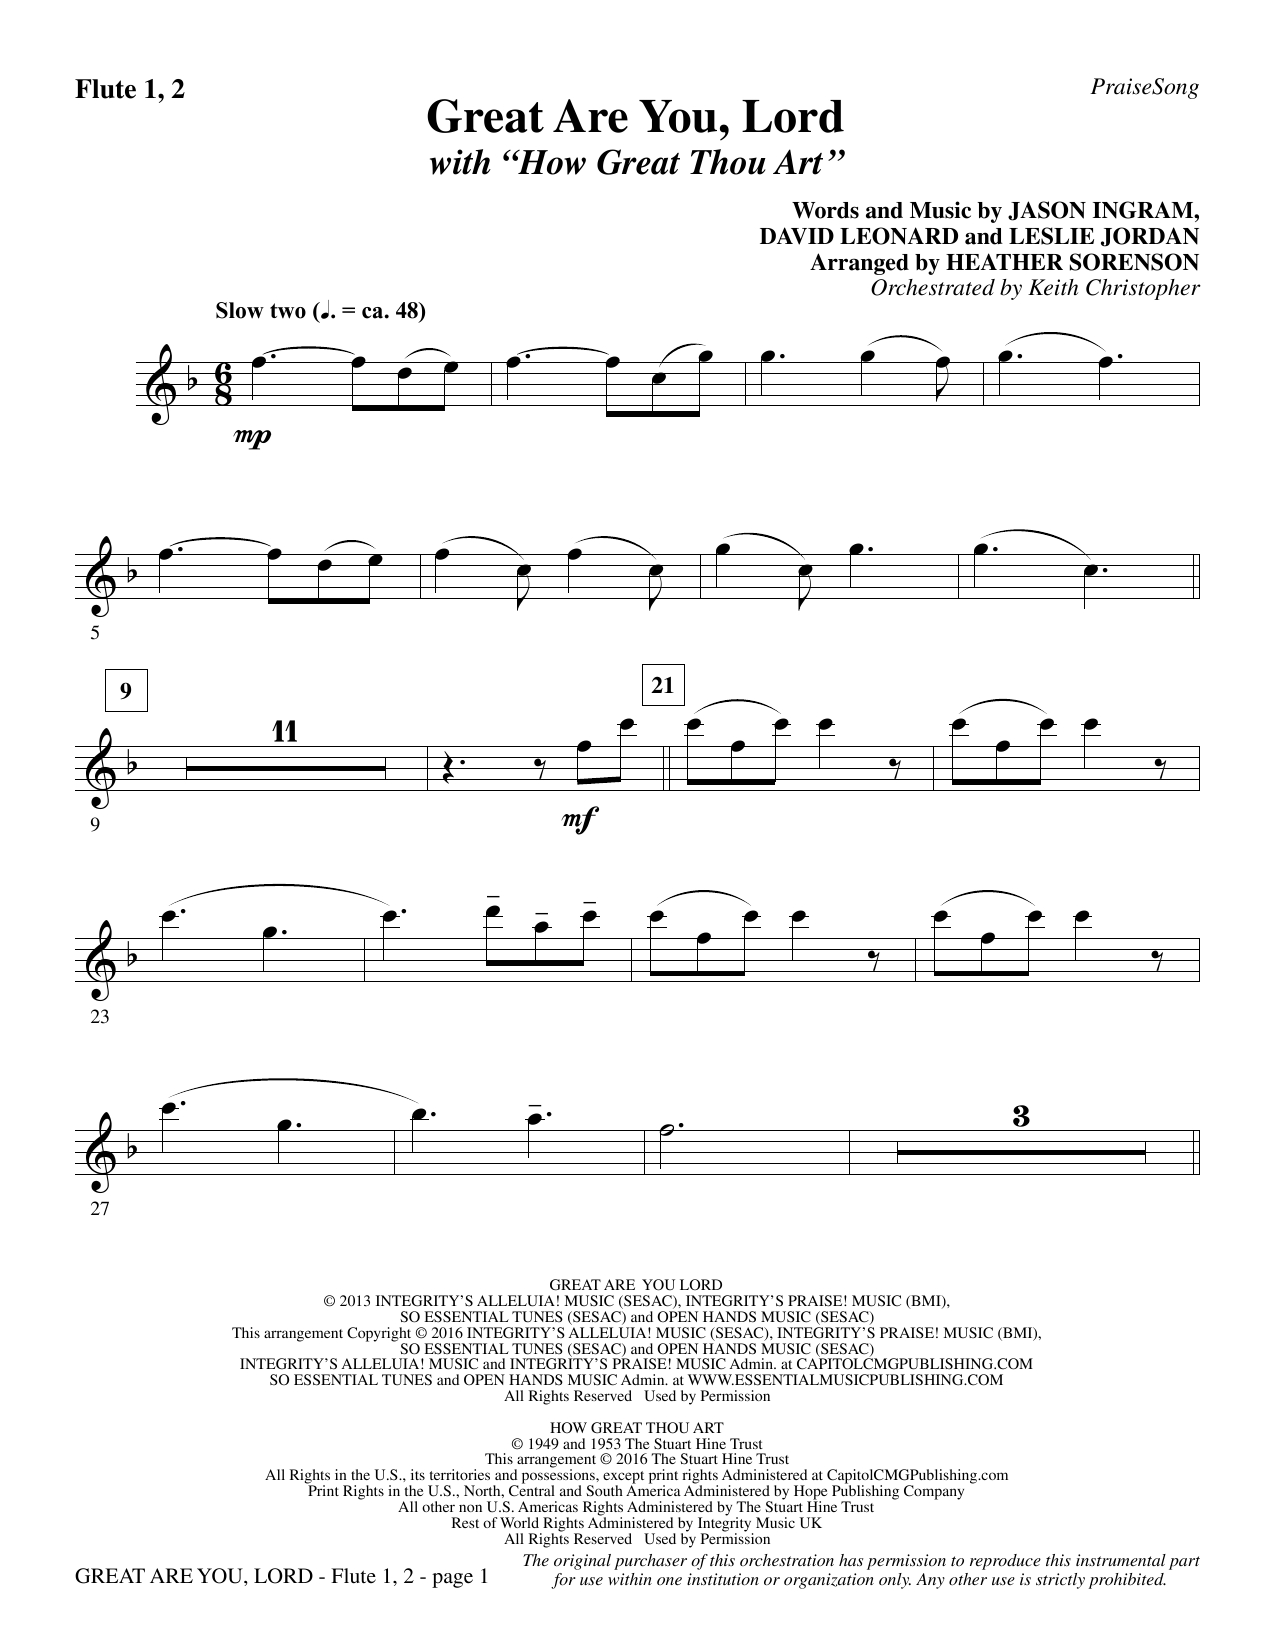 How Great Thou Art Chords Great Are You Lord With How Great Thou Art Flute 1 2 Heather Sorenson Choir Instrumental Pak Digital Sheet Music